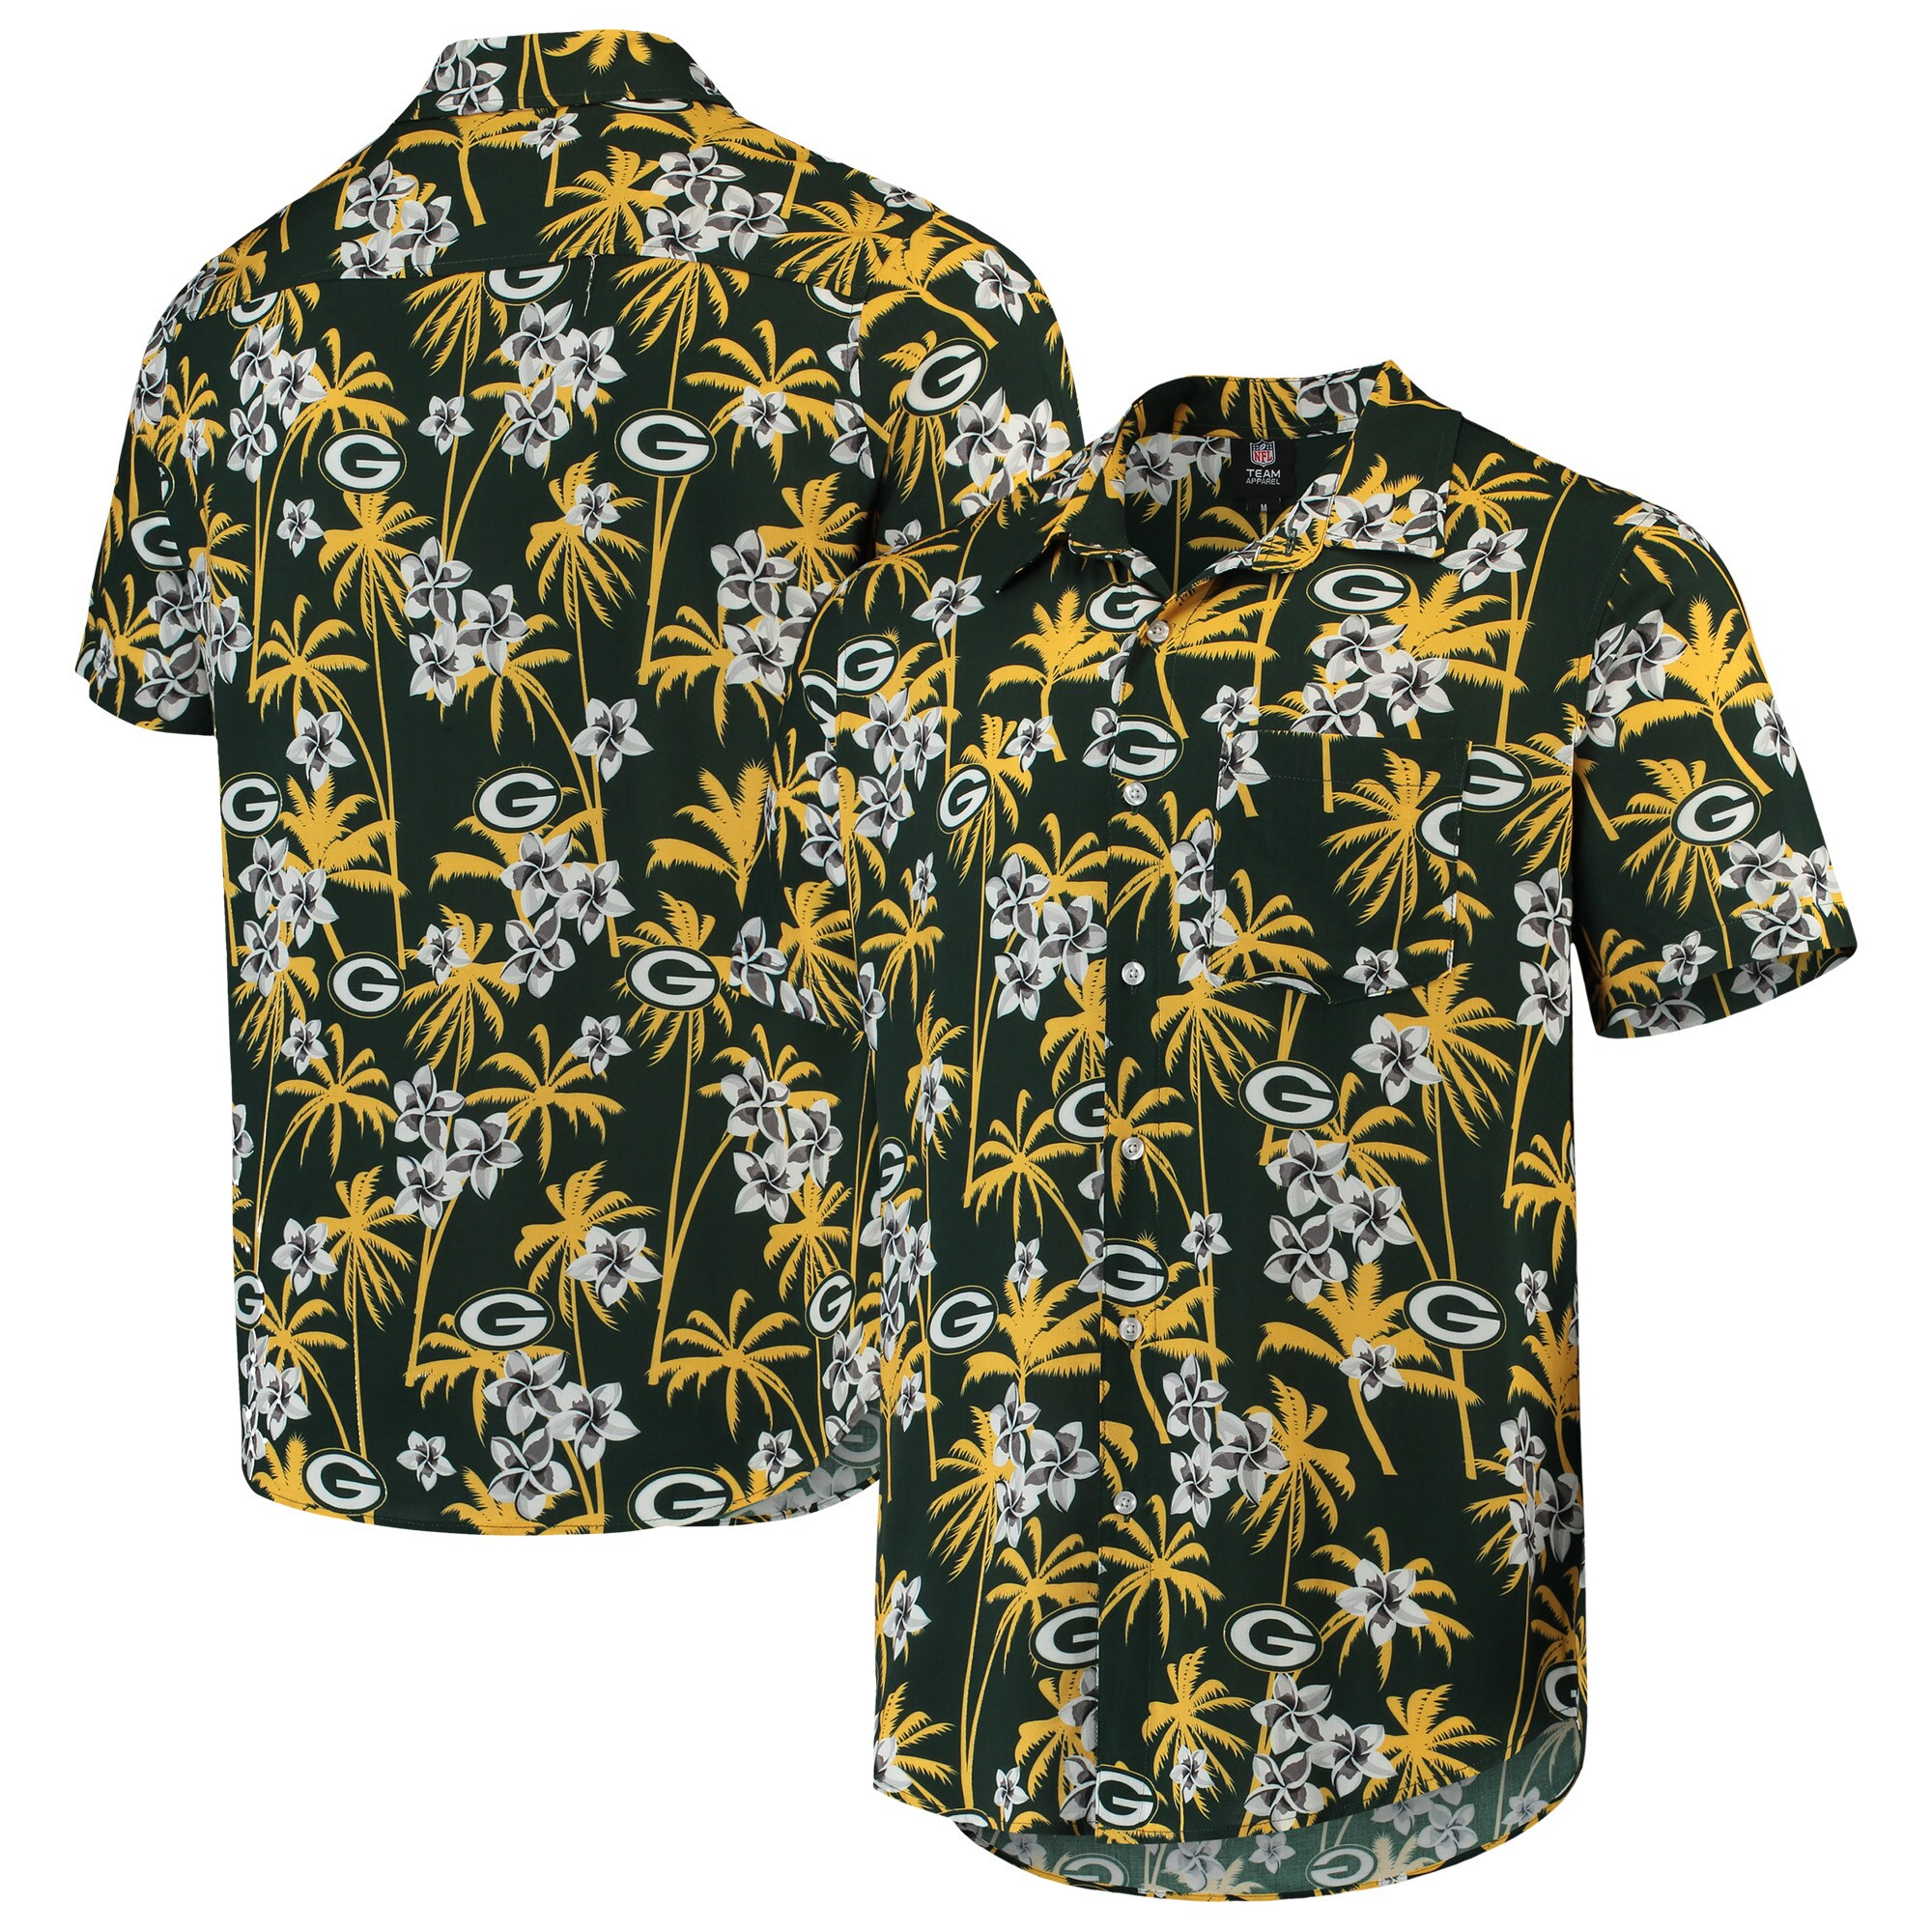 Green Bay Packers Floral Woven Button-Up Shirt - Green